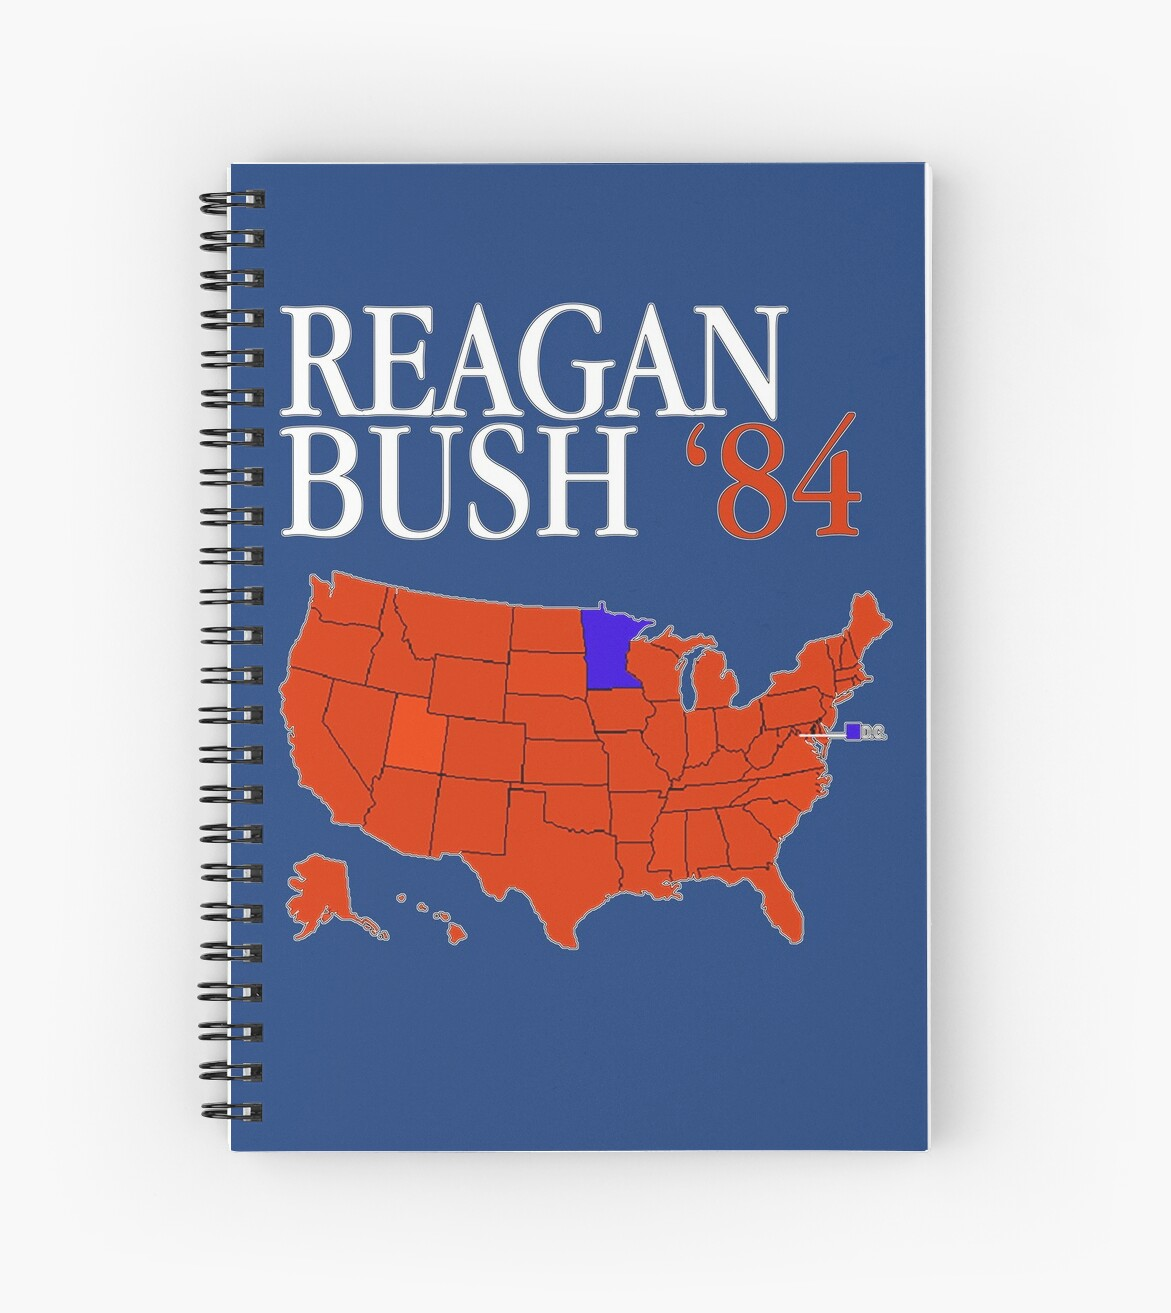 Reagan Bush \'84 Retro Logo Red White Blue Election Map Ronald George ...